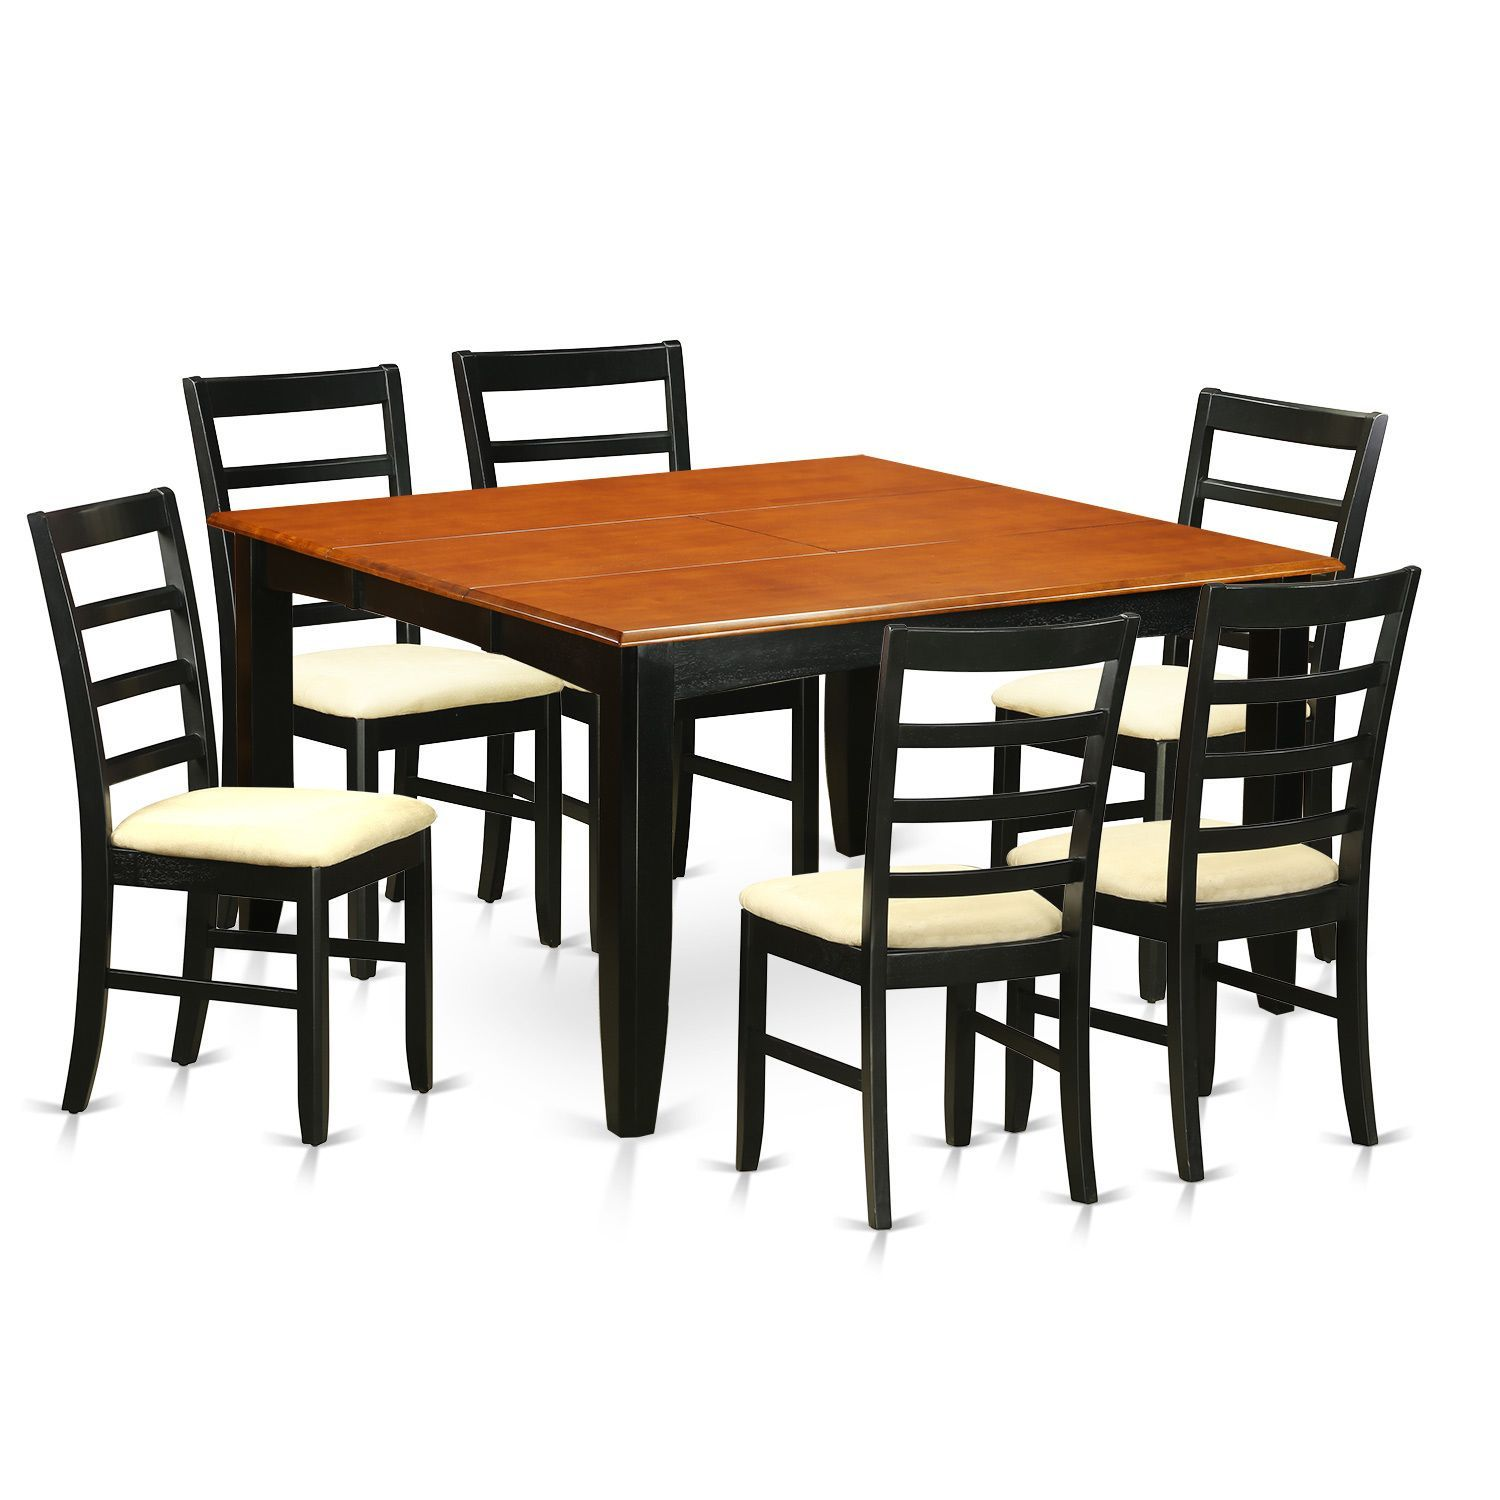 Overstock Com Online Shopping Bedding Furniture Electronics Jewelry Clothing More Dining Table In Kitchen Square Dining Tables Dining Table